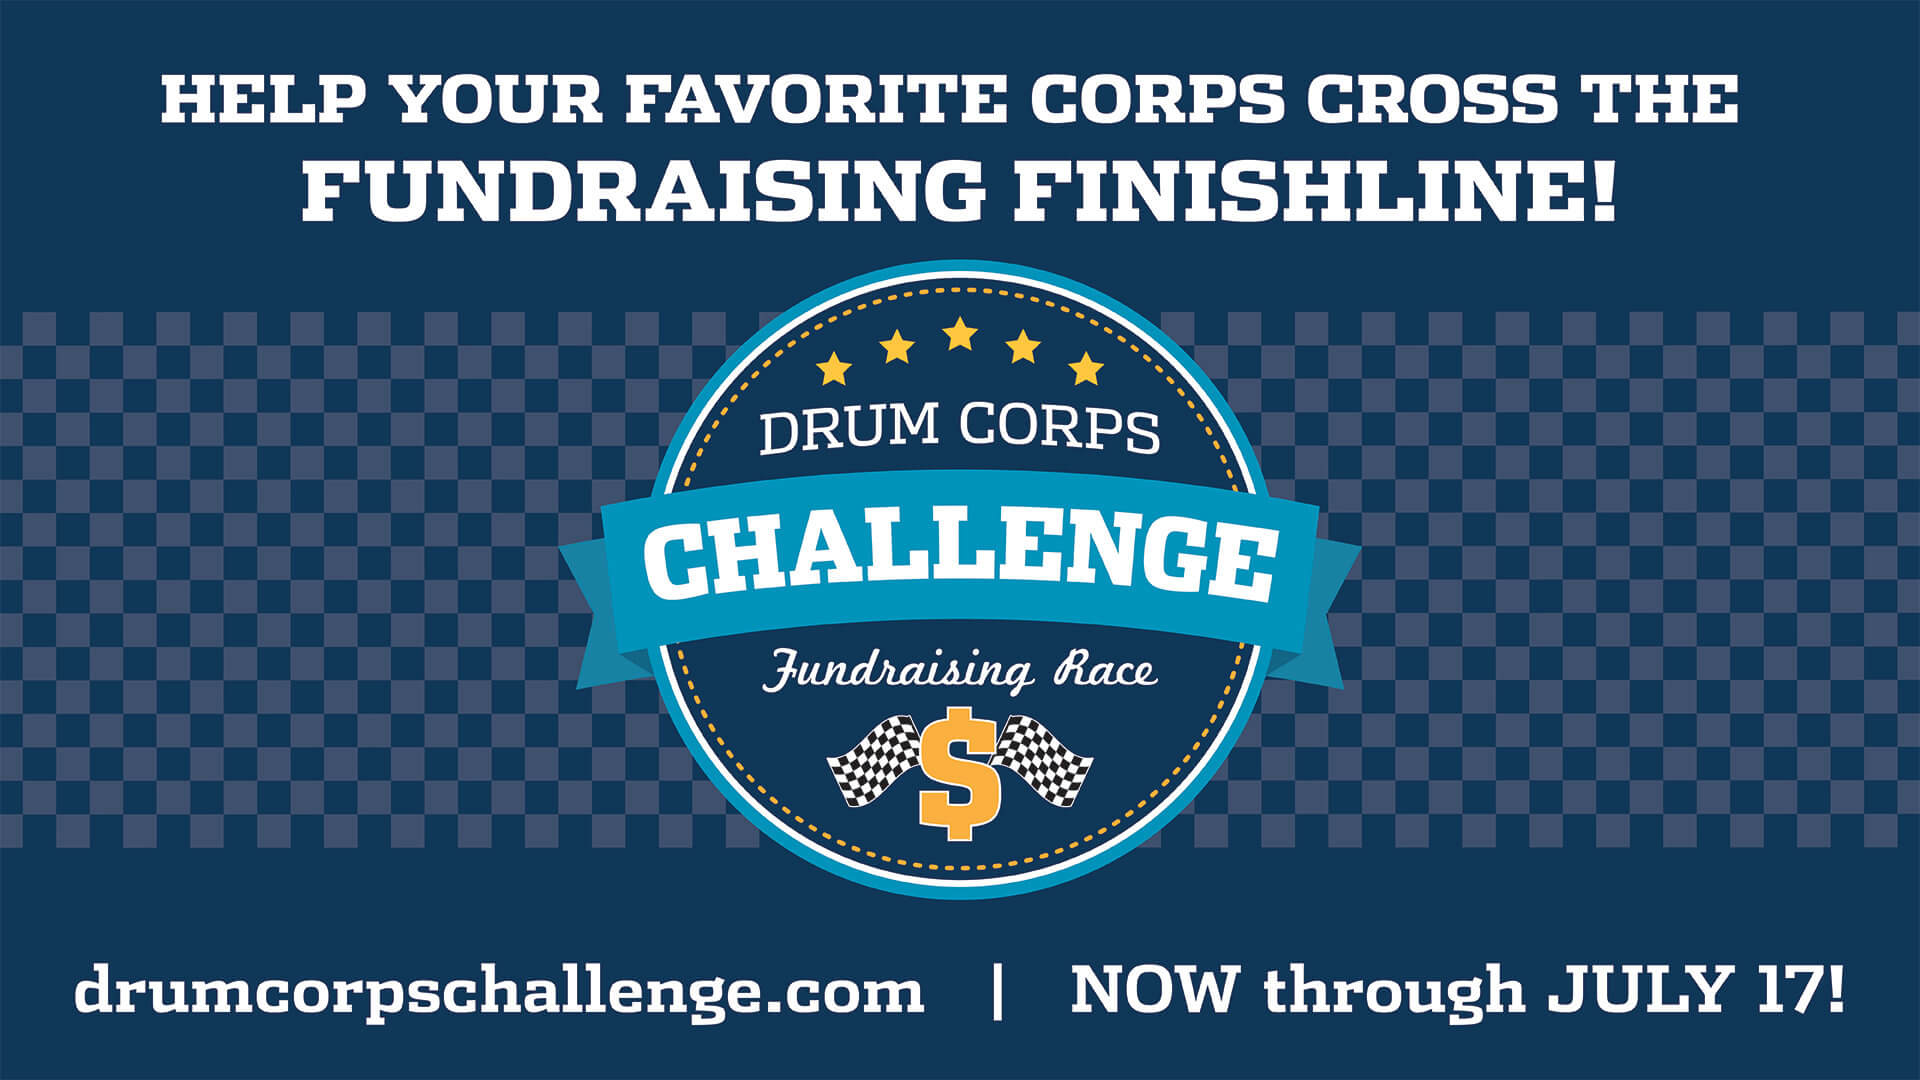 Drum Corps Challenge: New combined fundraising campaign for the drum corps activity